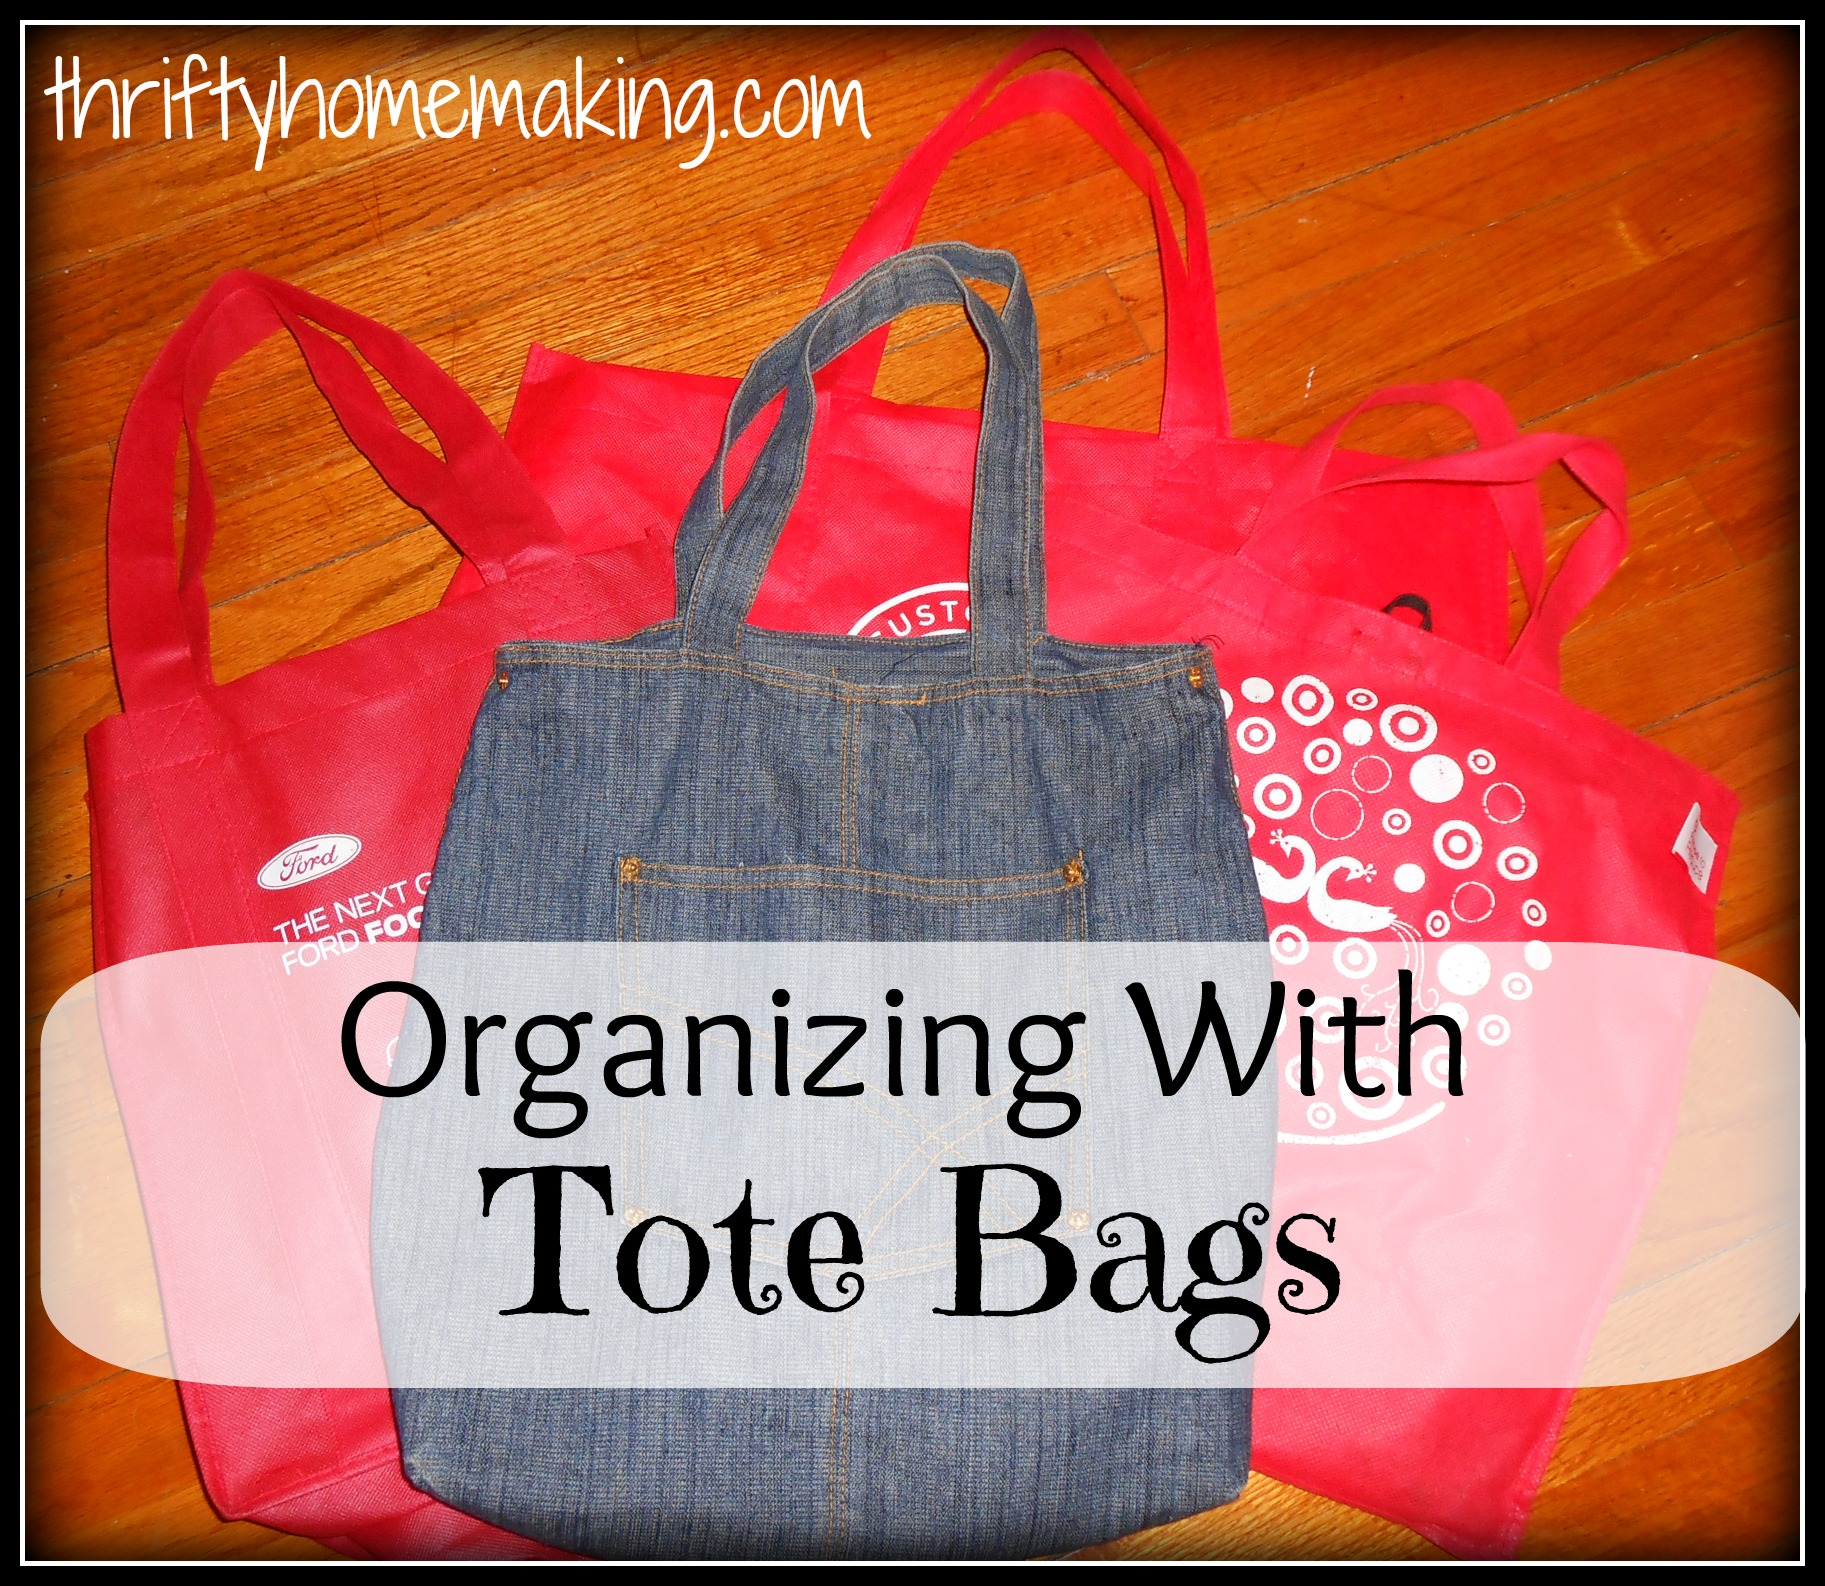 Organizing with Tote Bags